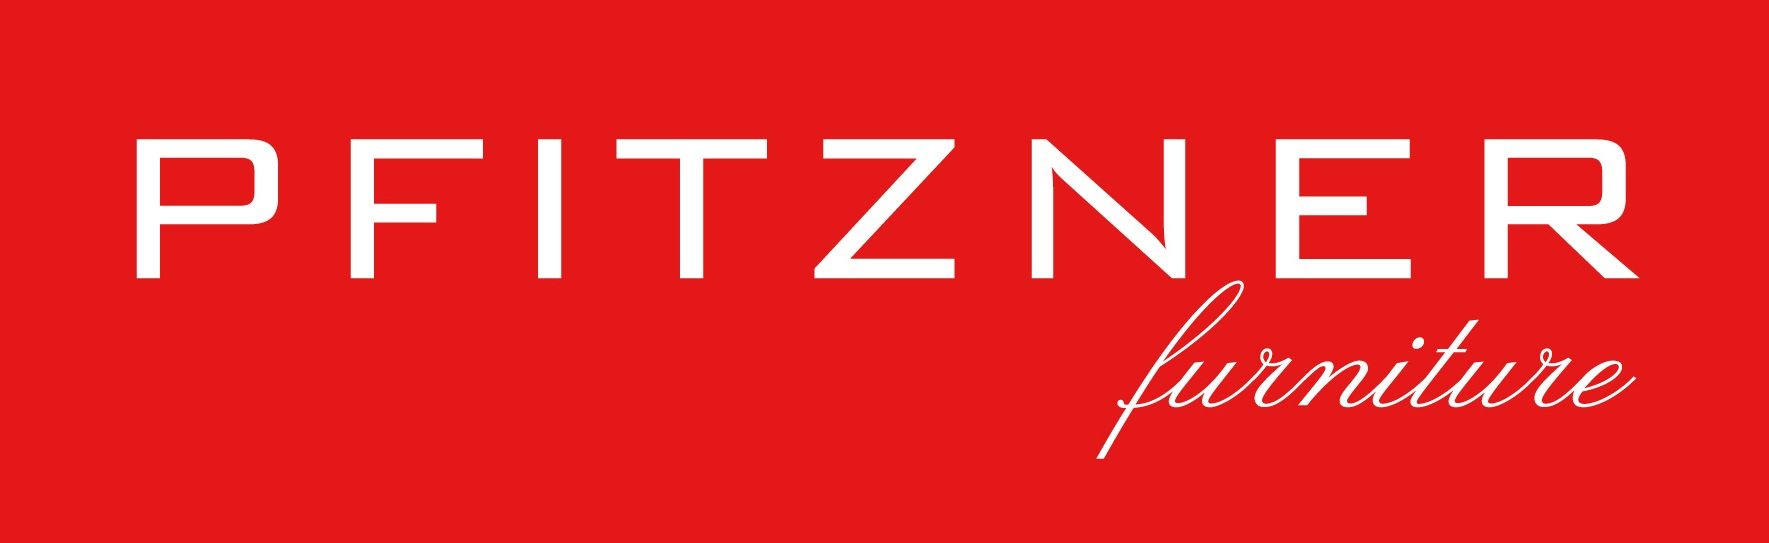 PFITZNER LOGO (left hand side).jpg